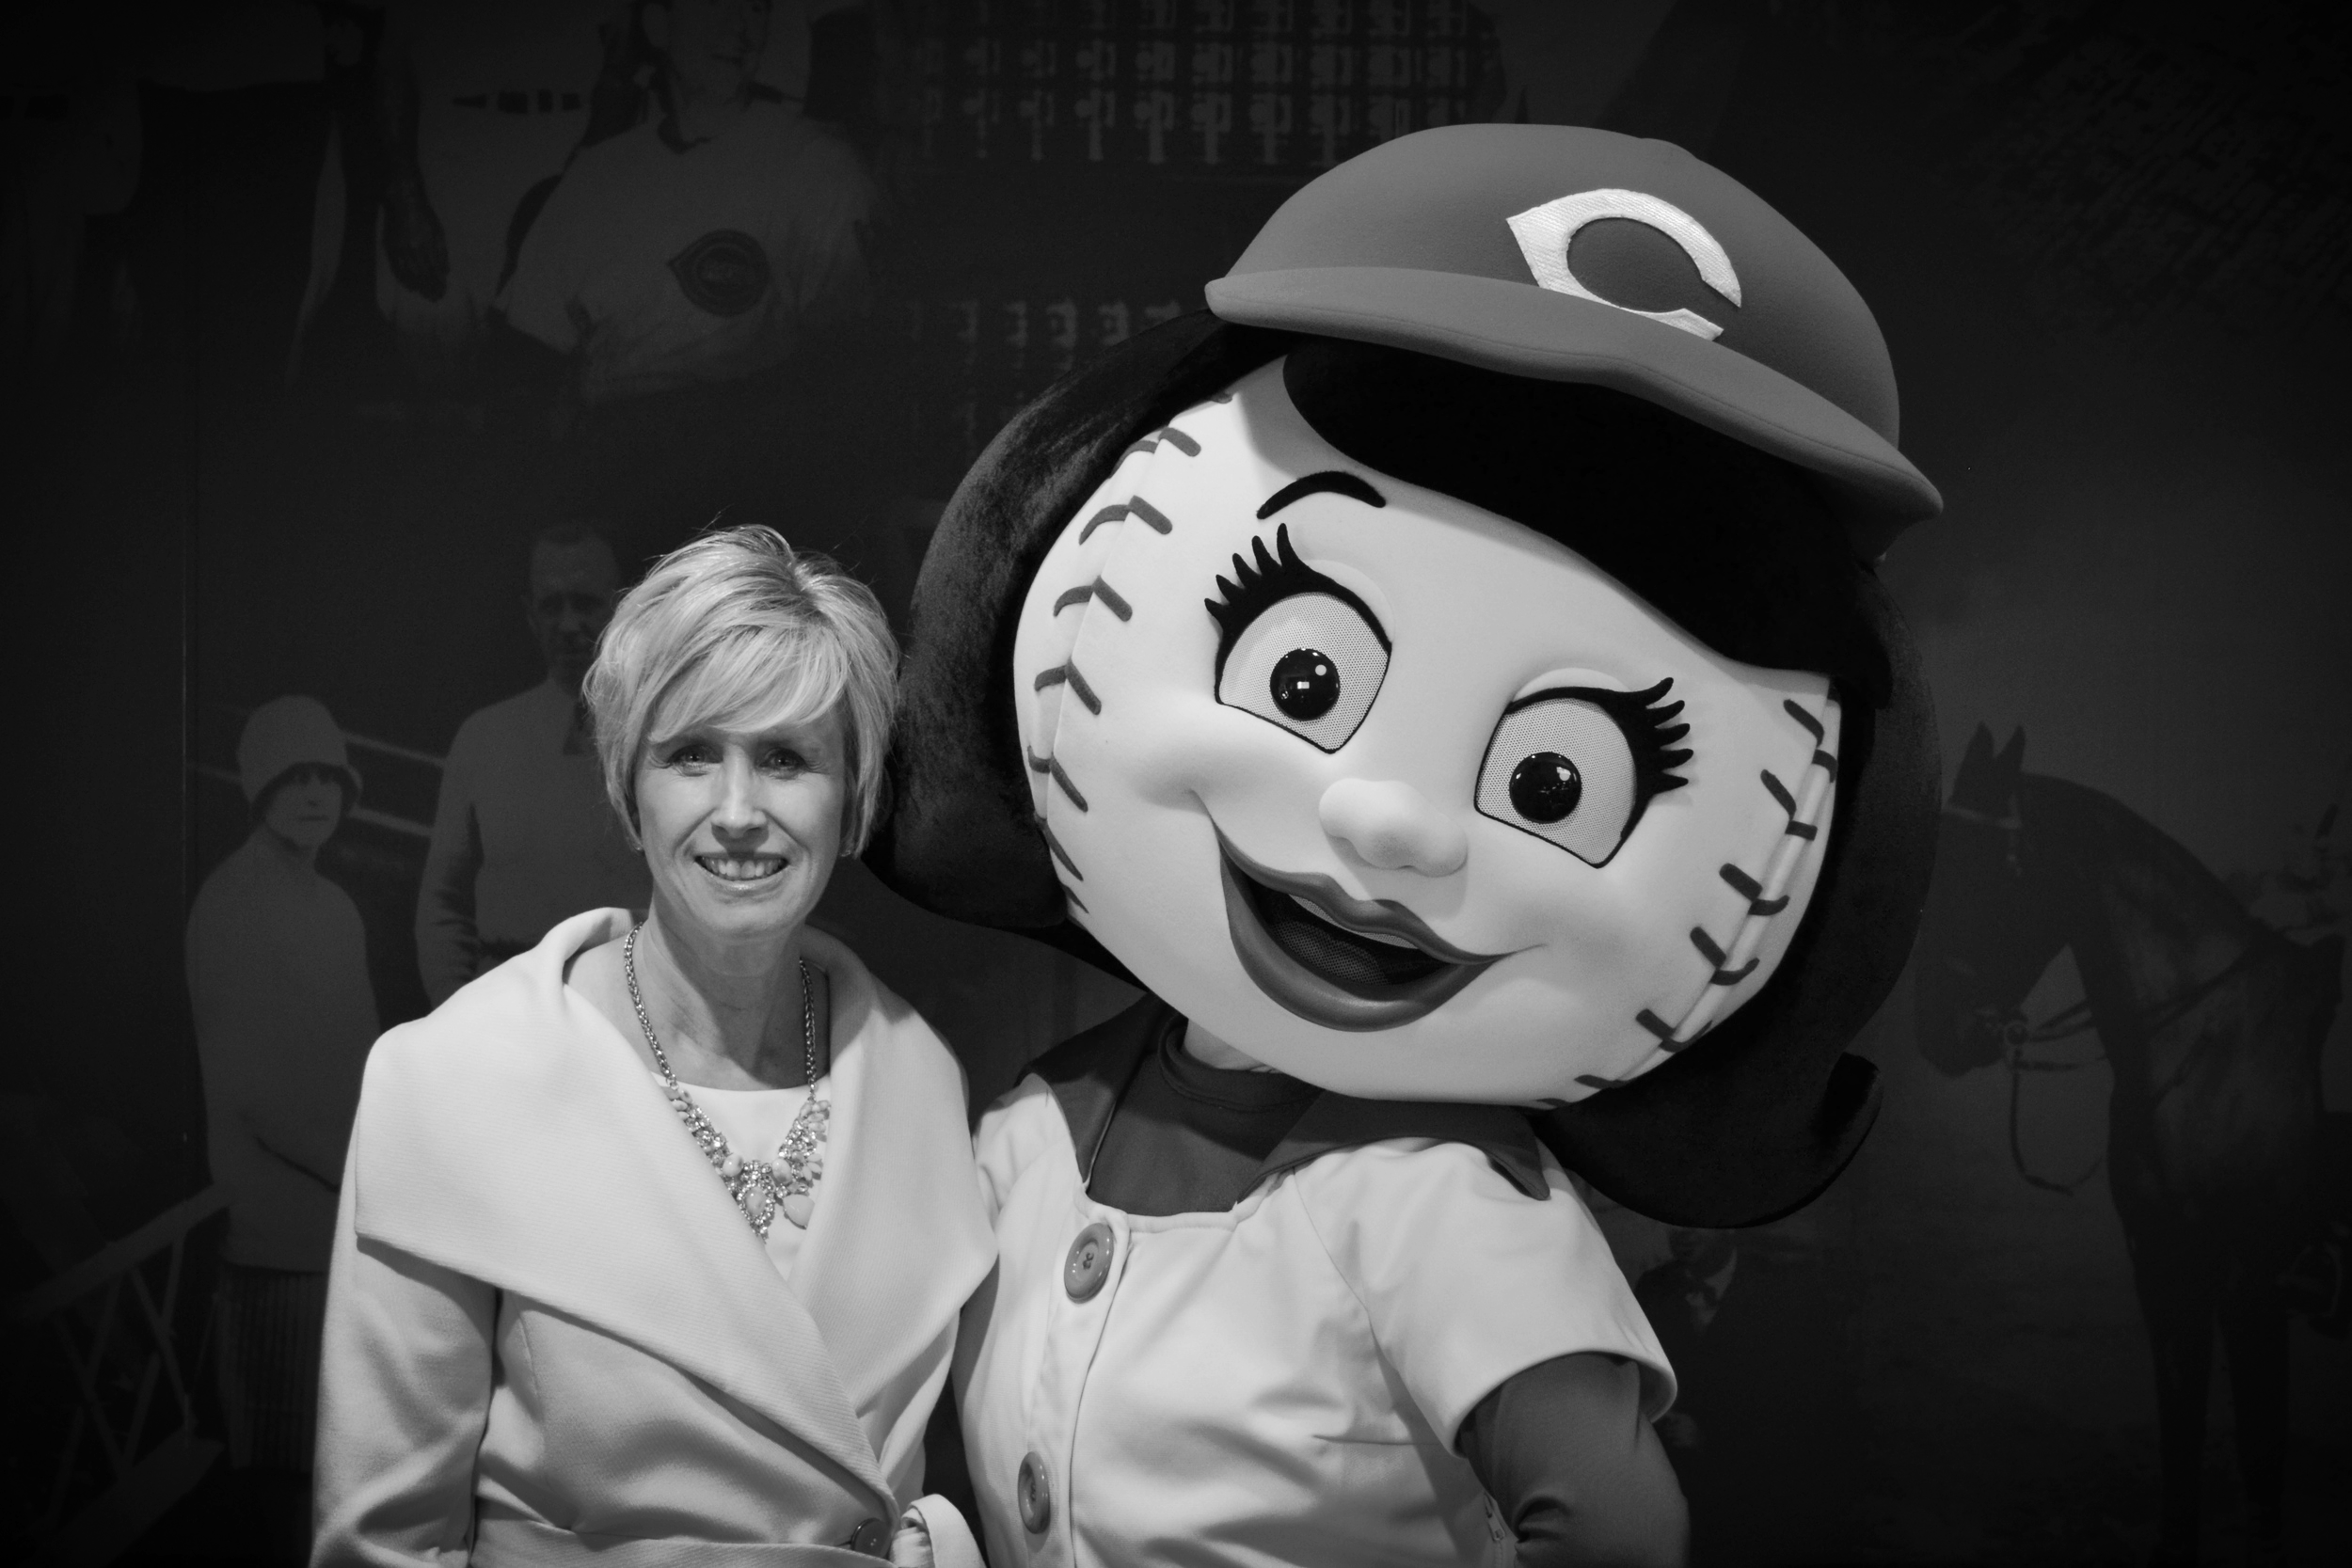 Tiffany Adams presents CELI's training programs to the Cincinnati Reds' wives and meets the lovely Rosie Red.